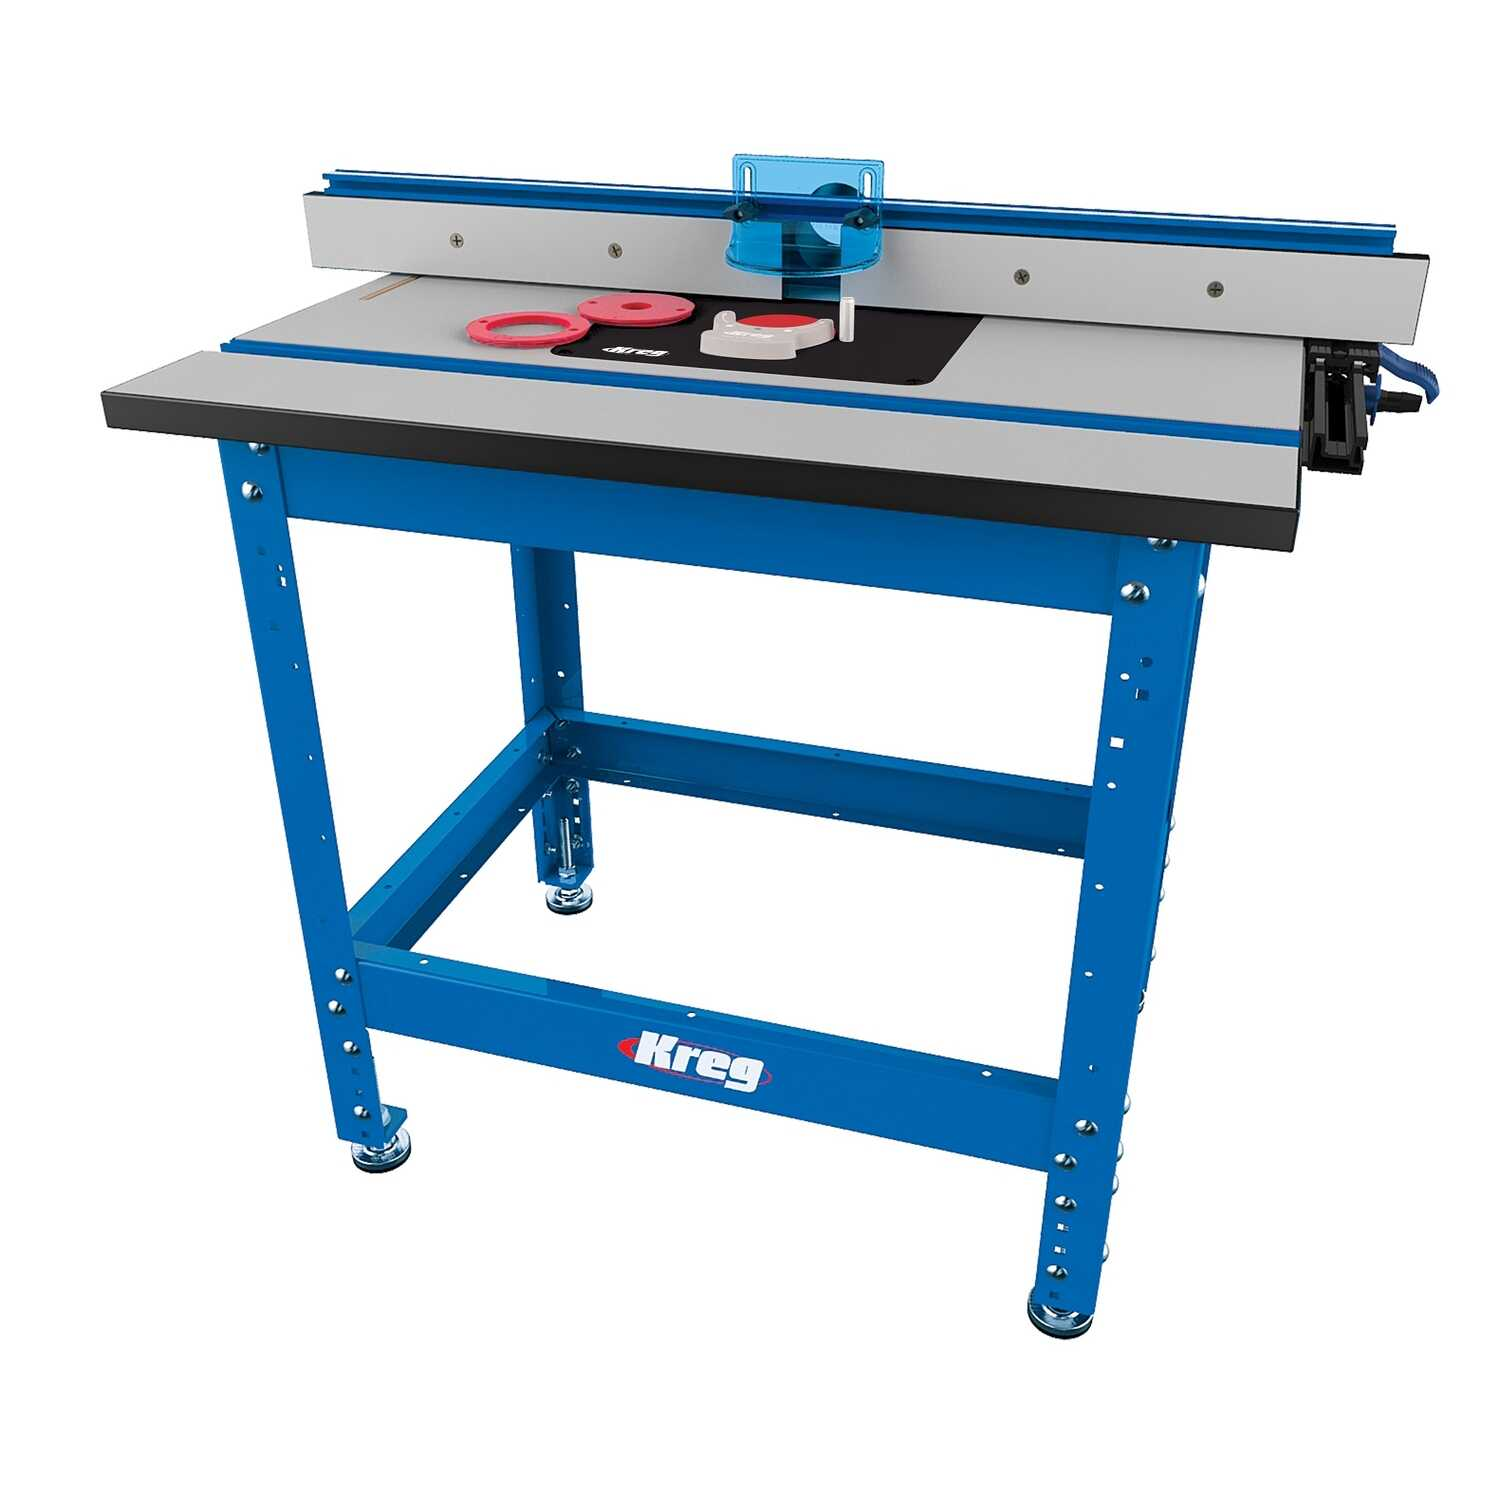 Kreg Tool  36 in. L x 32.50 in. W Steel  Precision  Router Table System  Blue  1 pc.